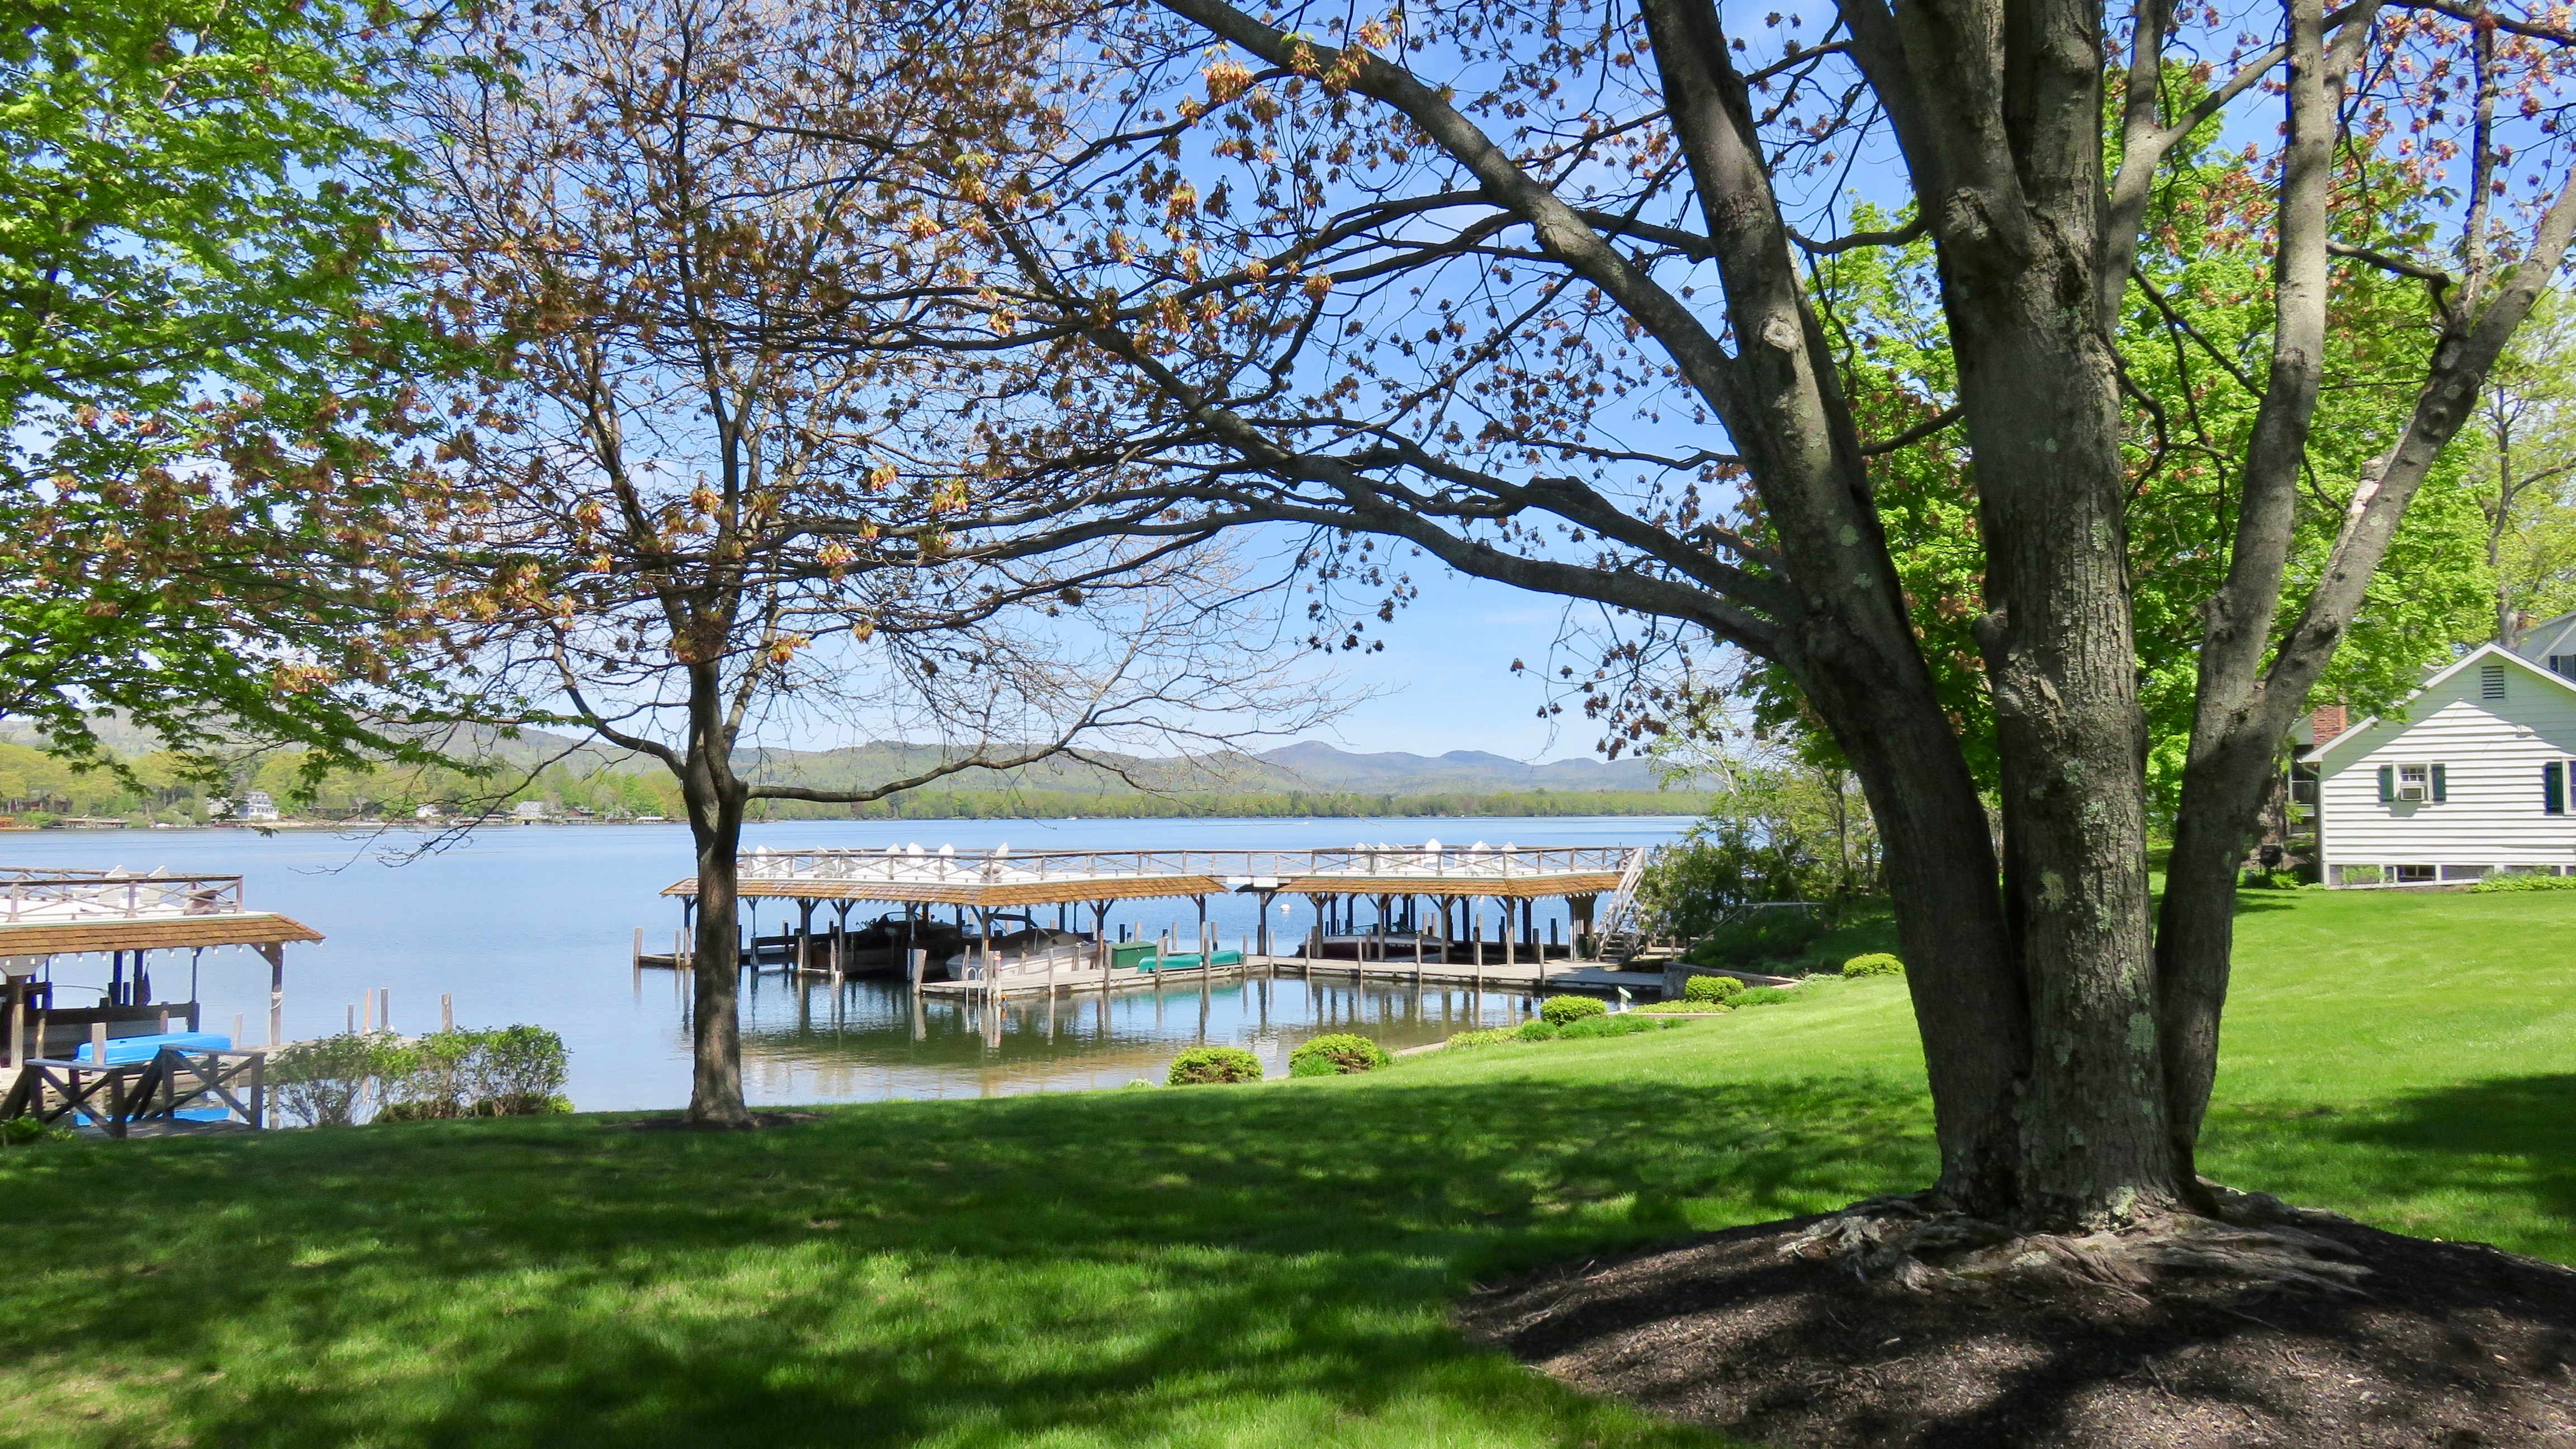 Lake George vacation cabin rentals beach in spring at Takundewide Cottages on Lake George